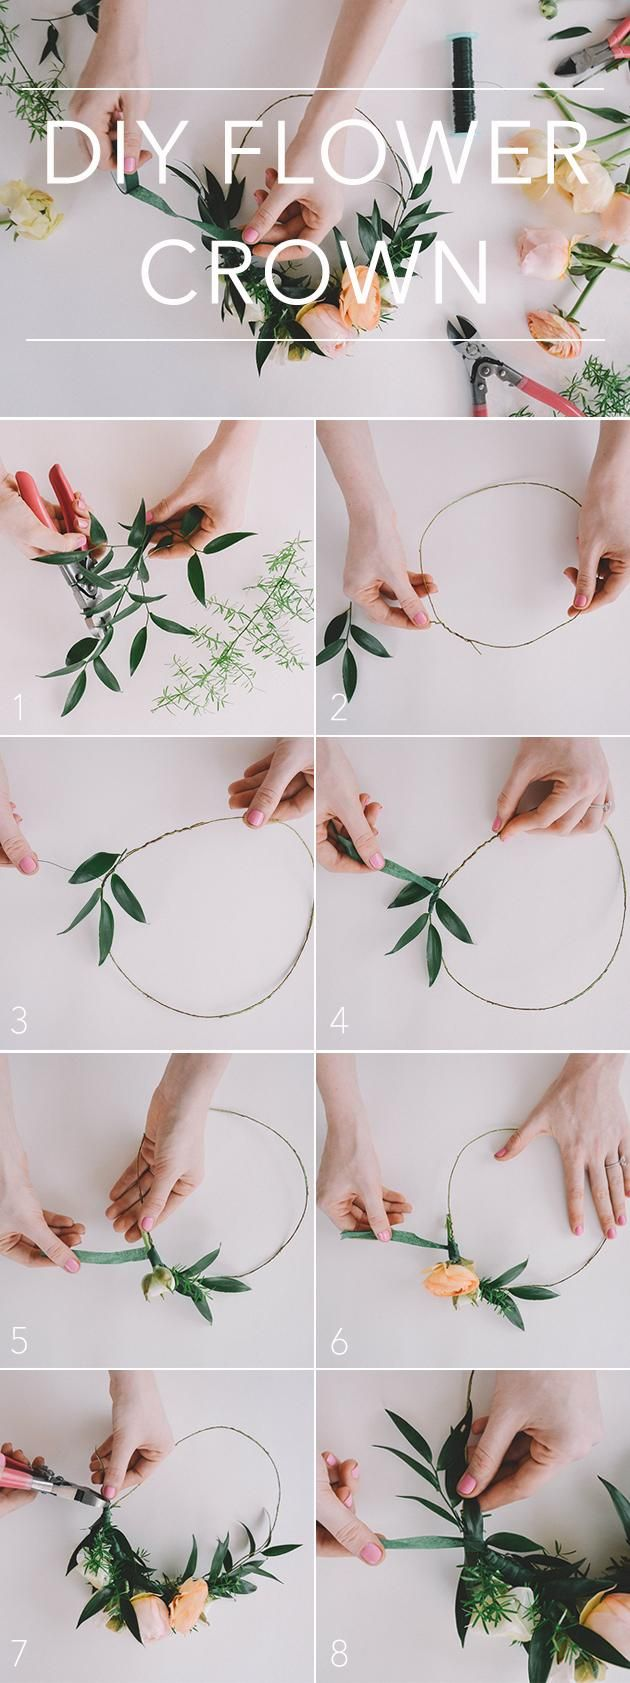 76 best floral crowns for weddings images on pinterest bridal how to diy a flower crown for your wedding day brides izmirmasajfo Images